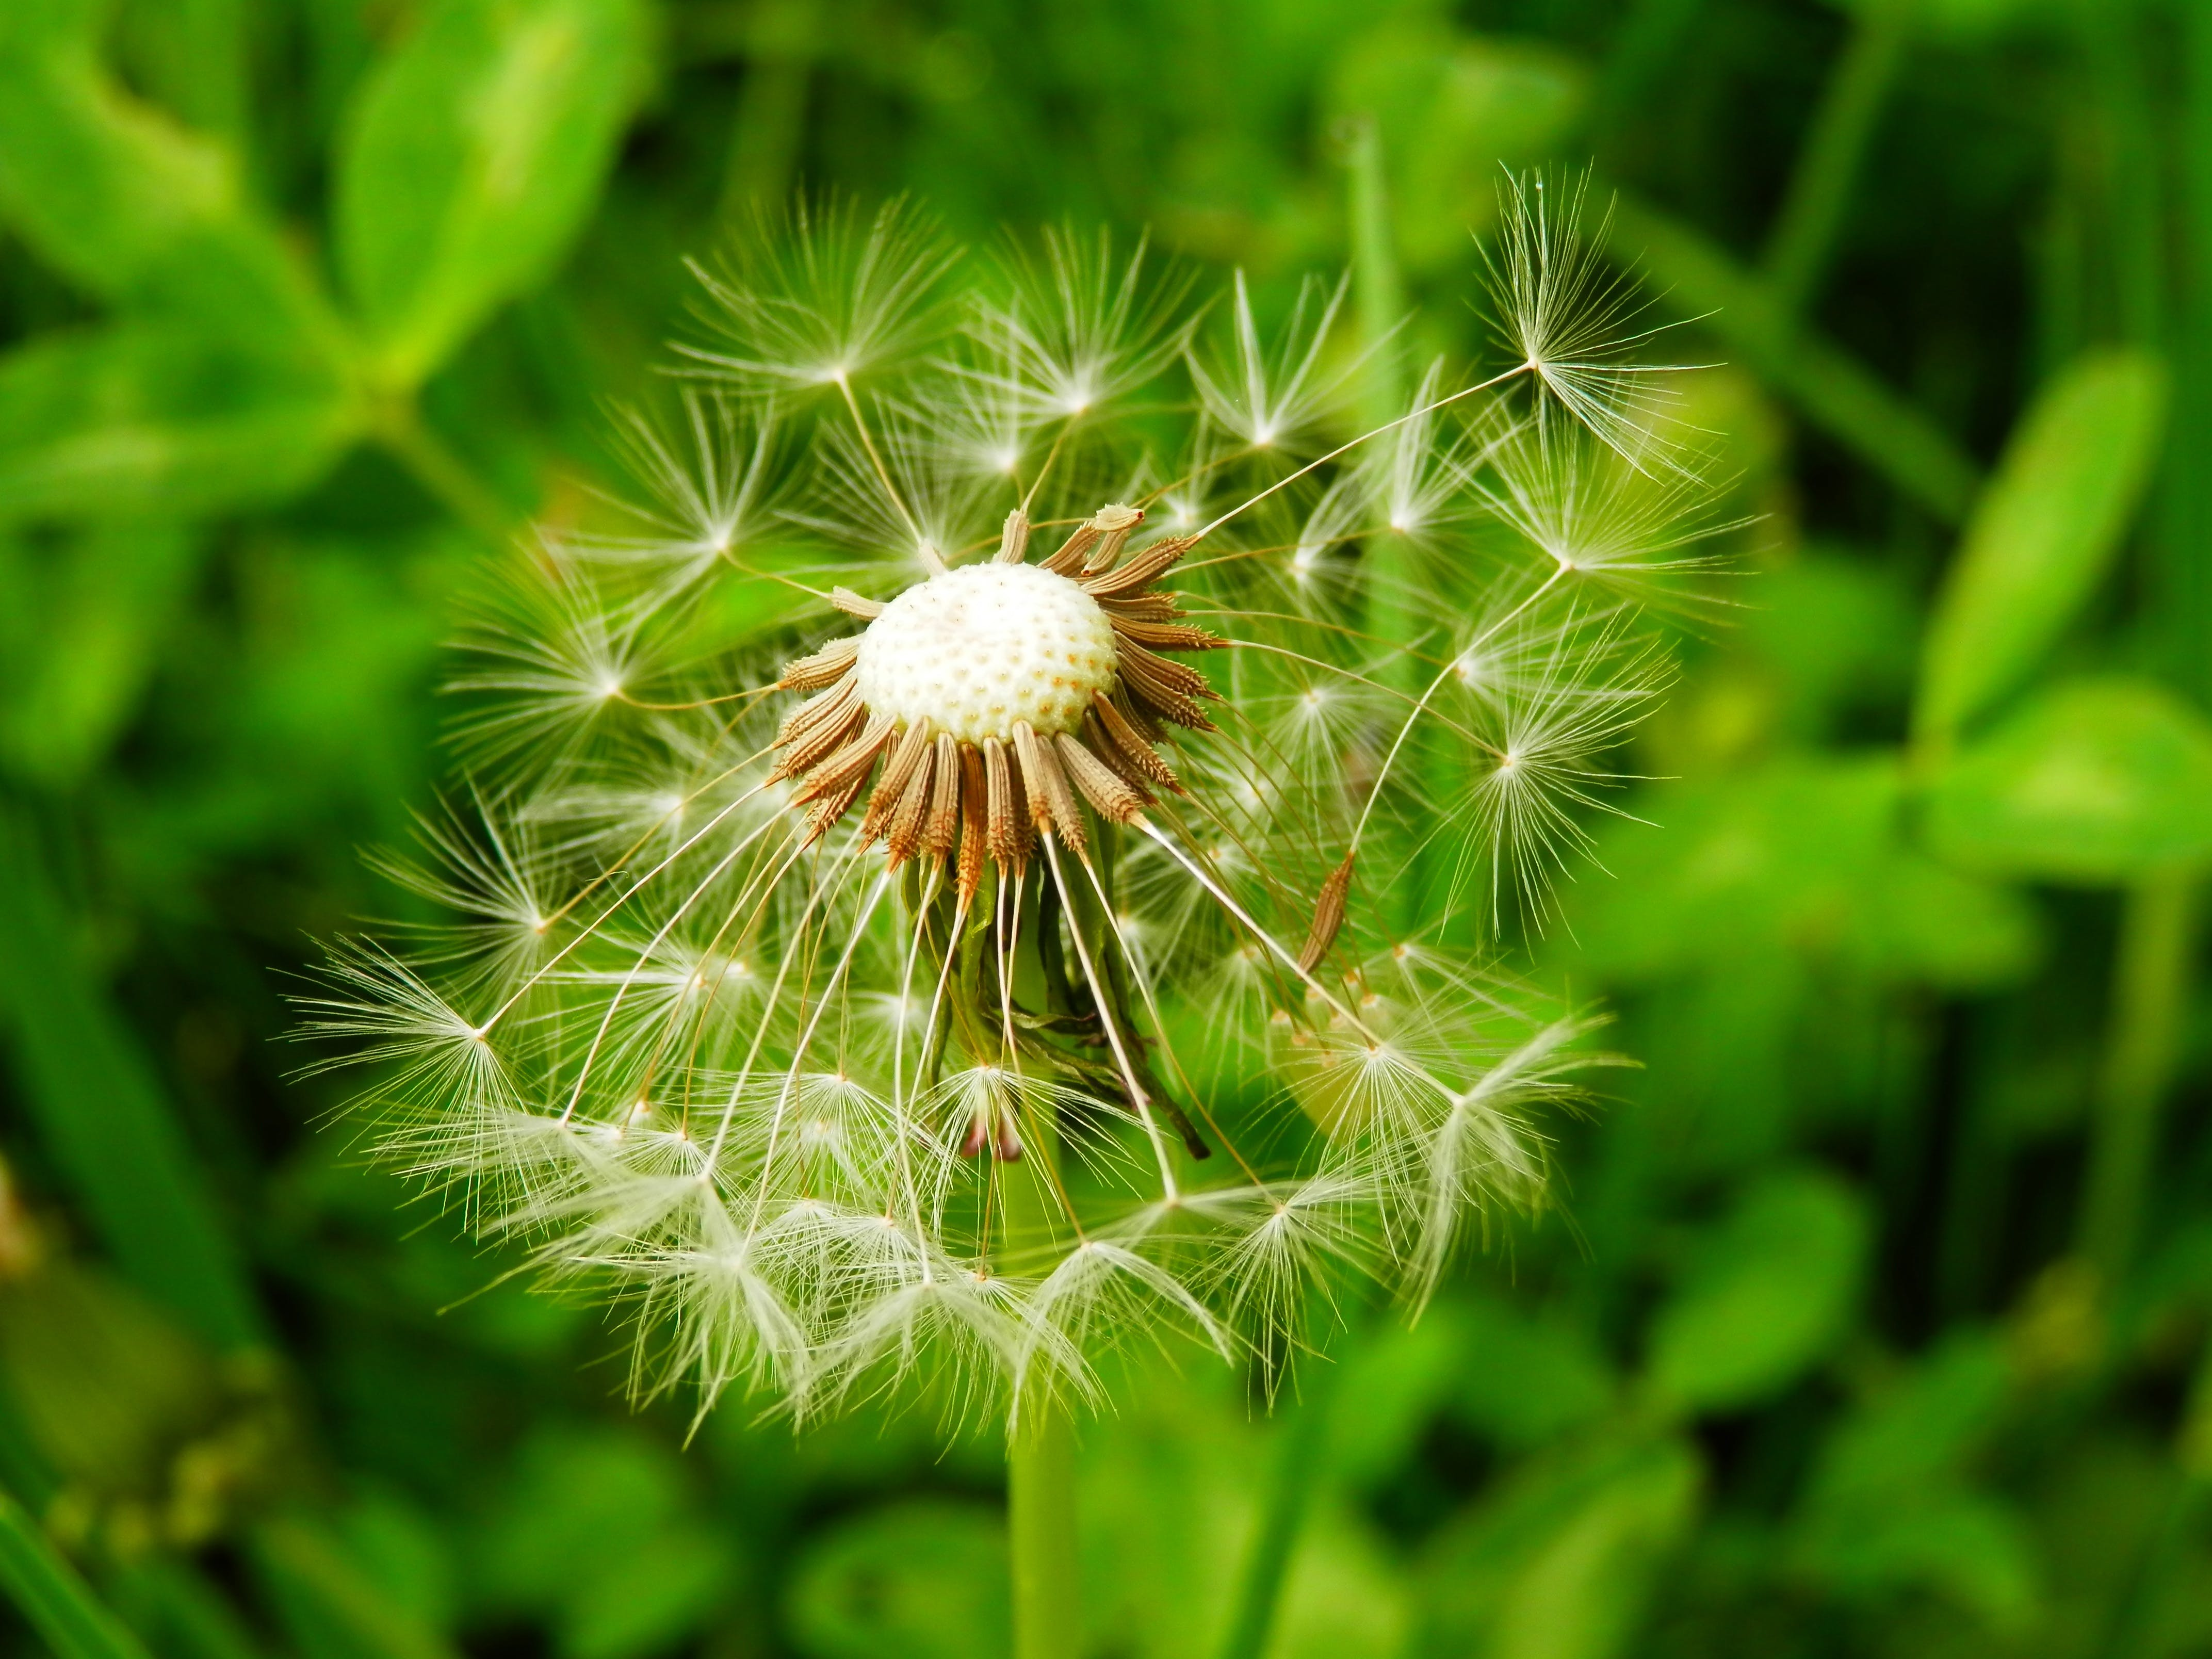 Free stock photo of nature, meadow, plant, dandelion